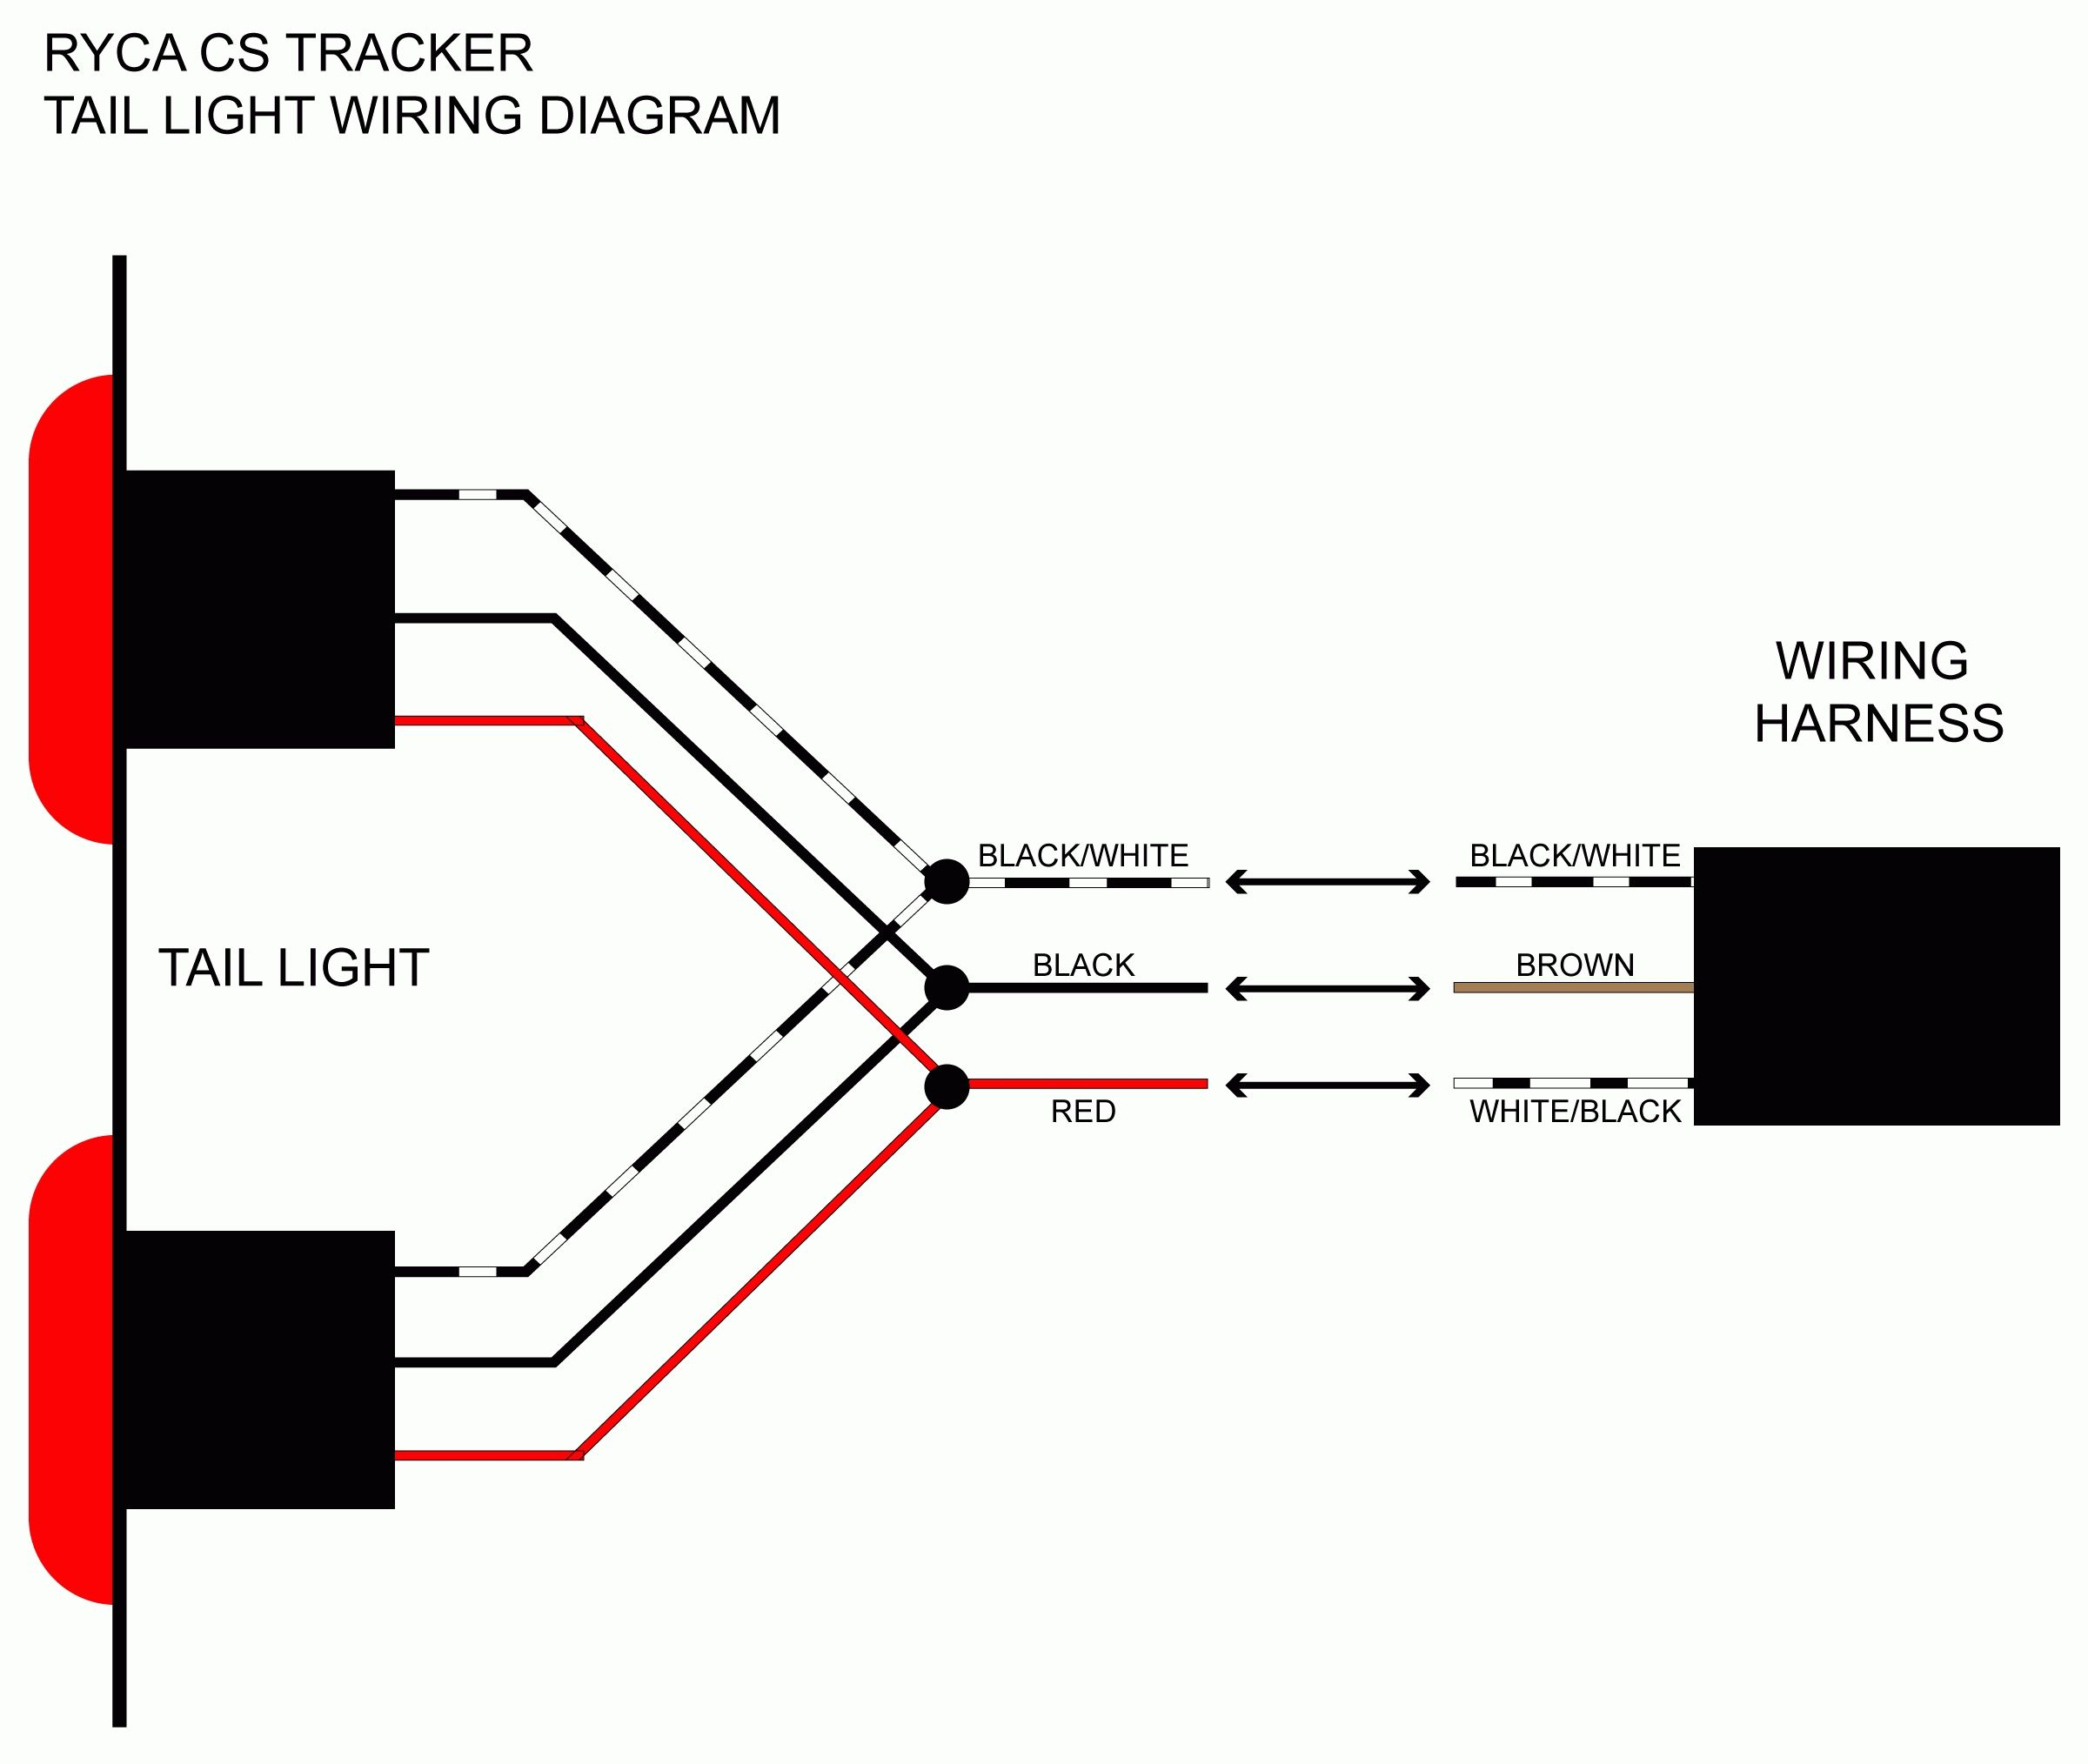 3 wire led light wiring diagram wiring diagram world 3 wire led strobe light wiring diagram led light wire diagram 3 [ 2400 x 2028 Pixel ]